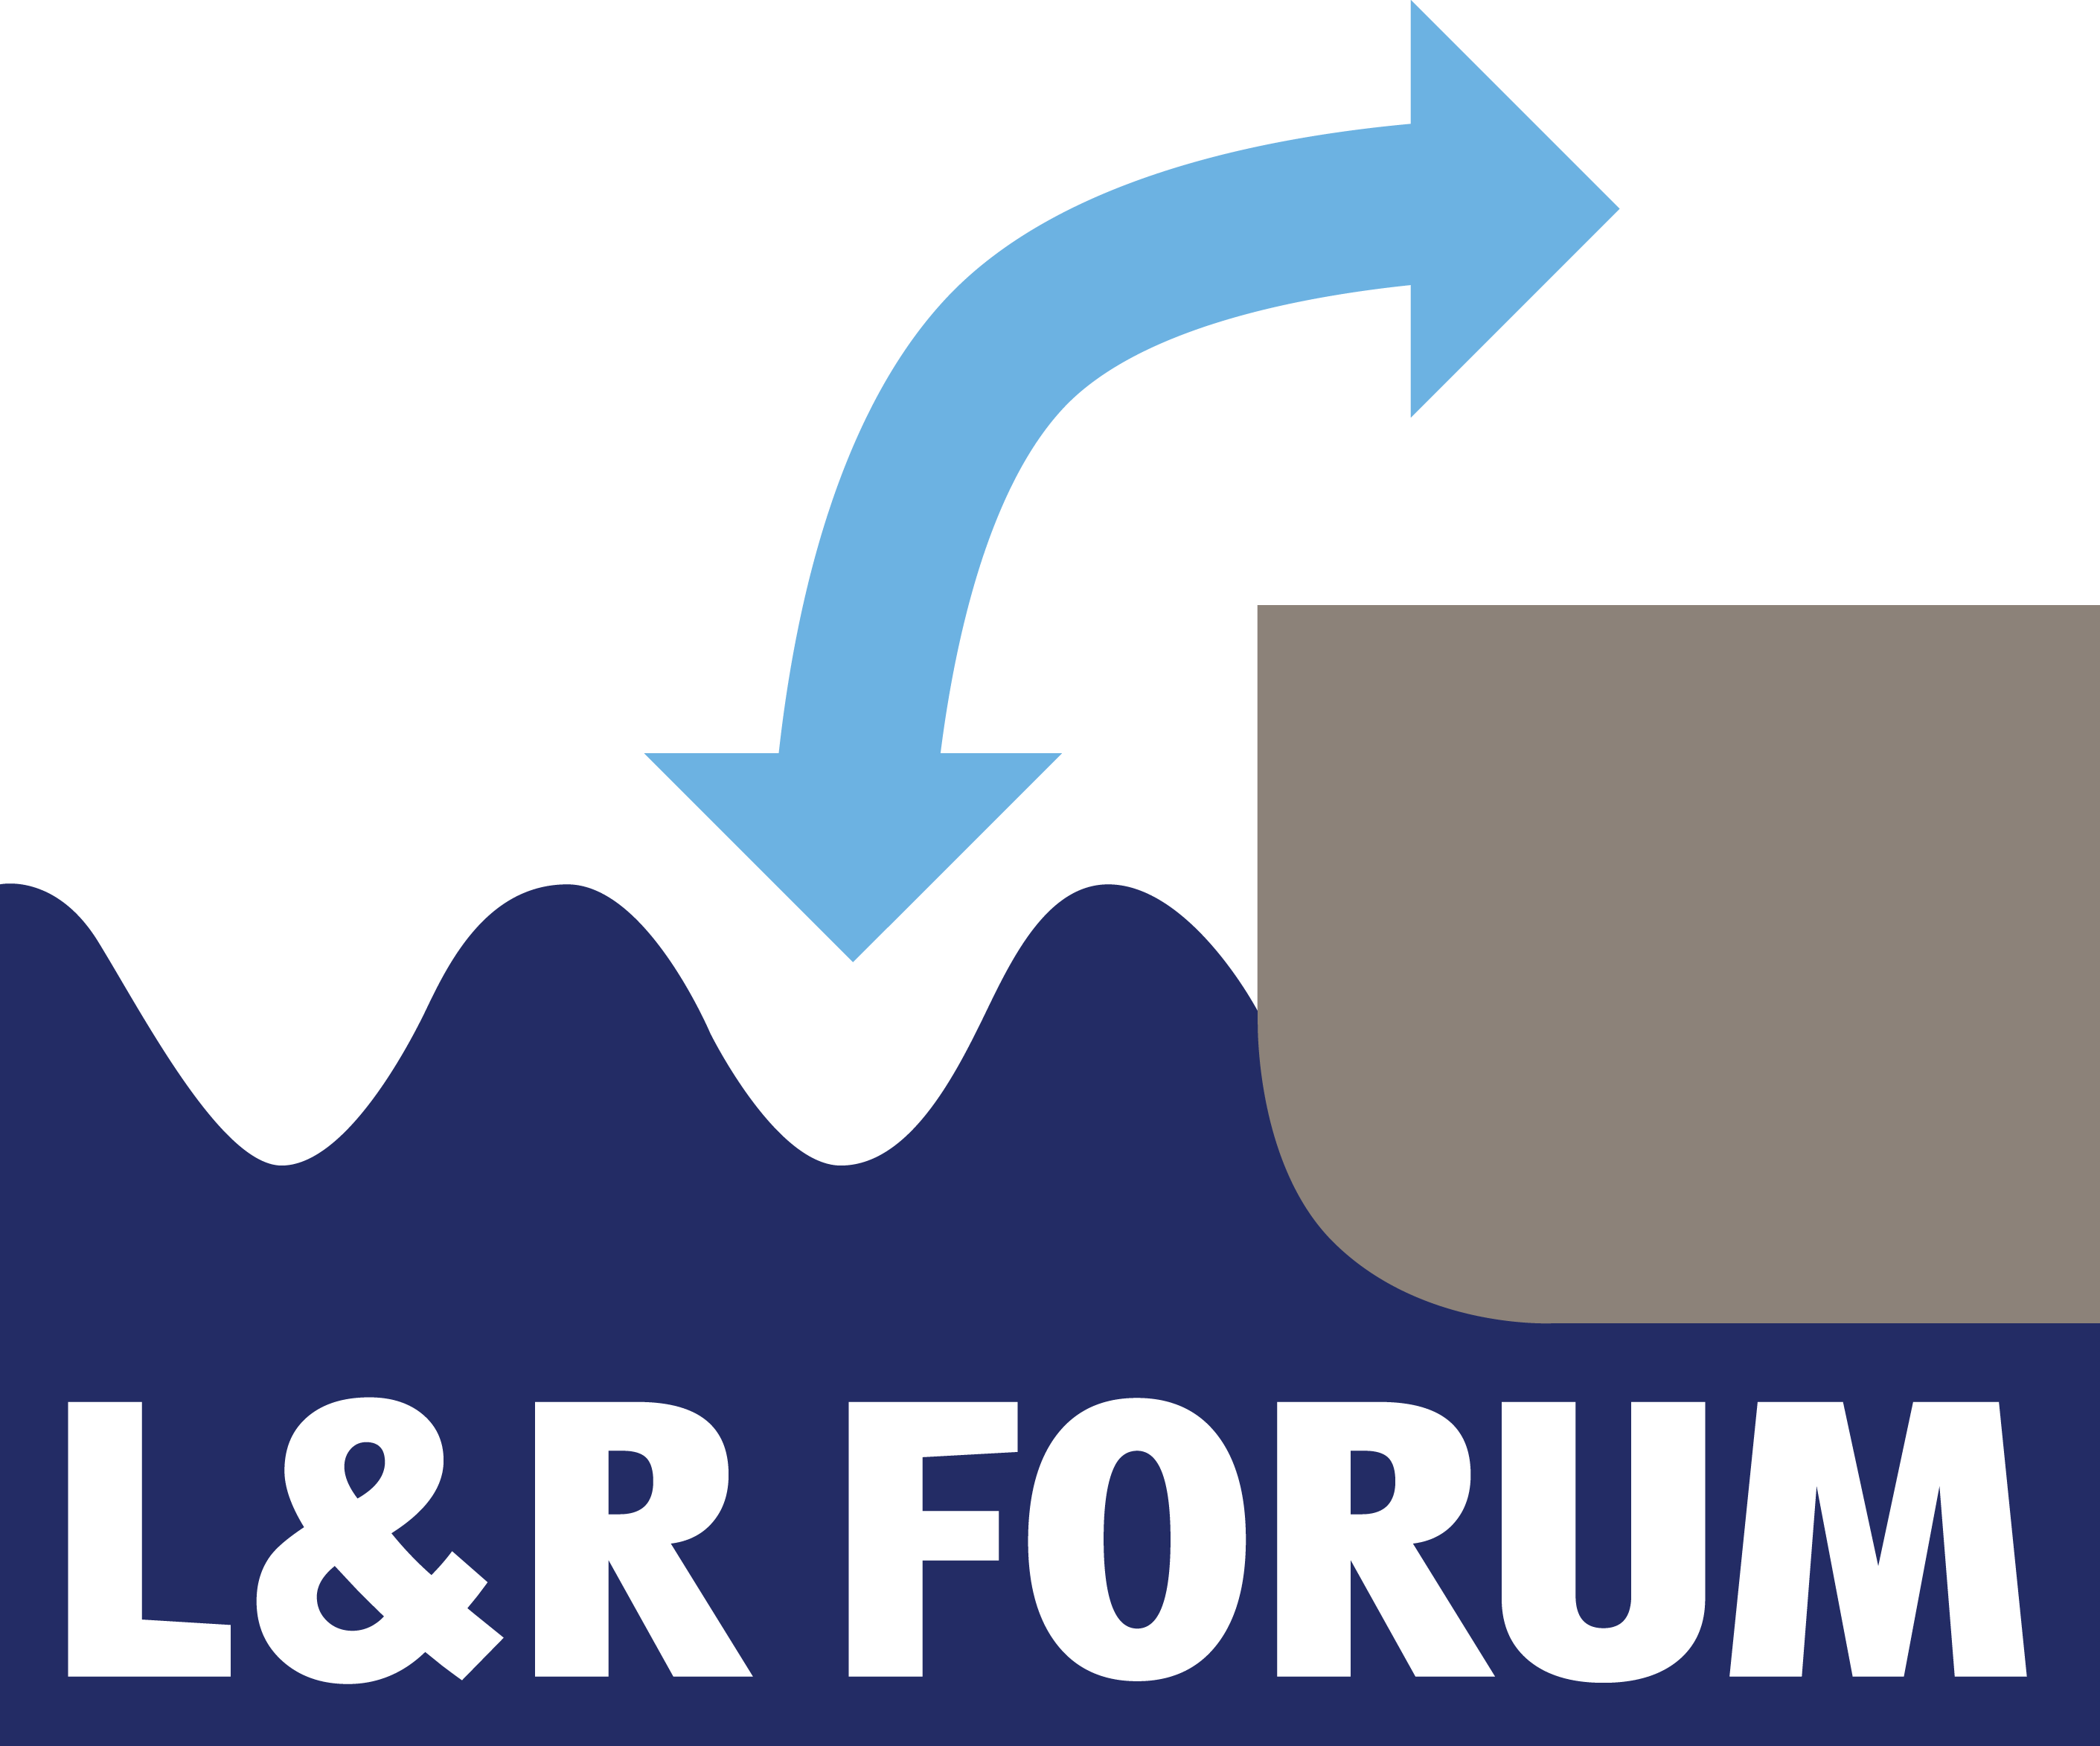 Launch & Recovery Forum